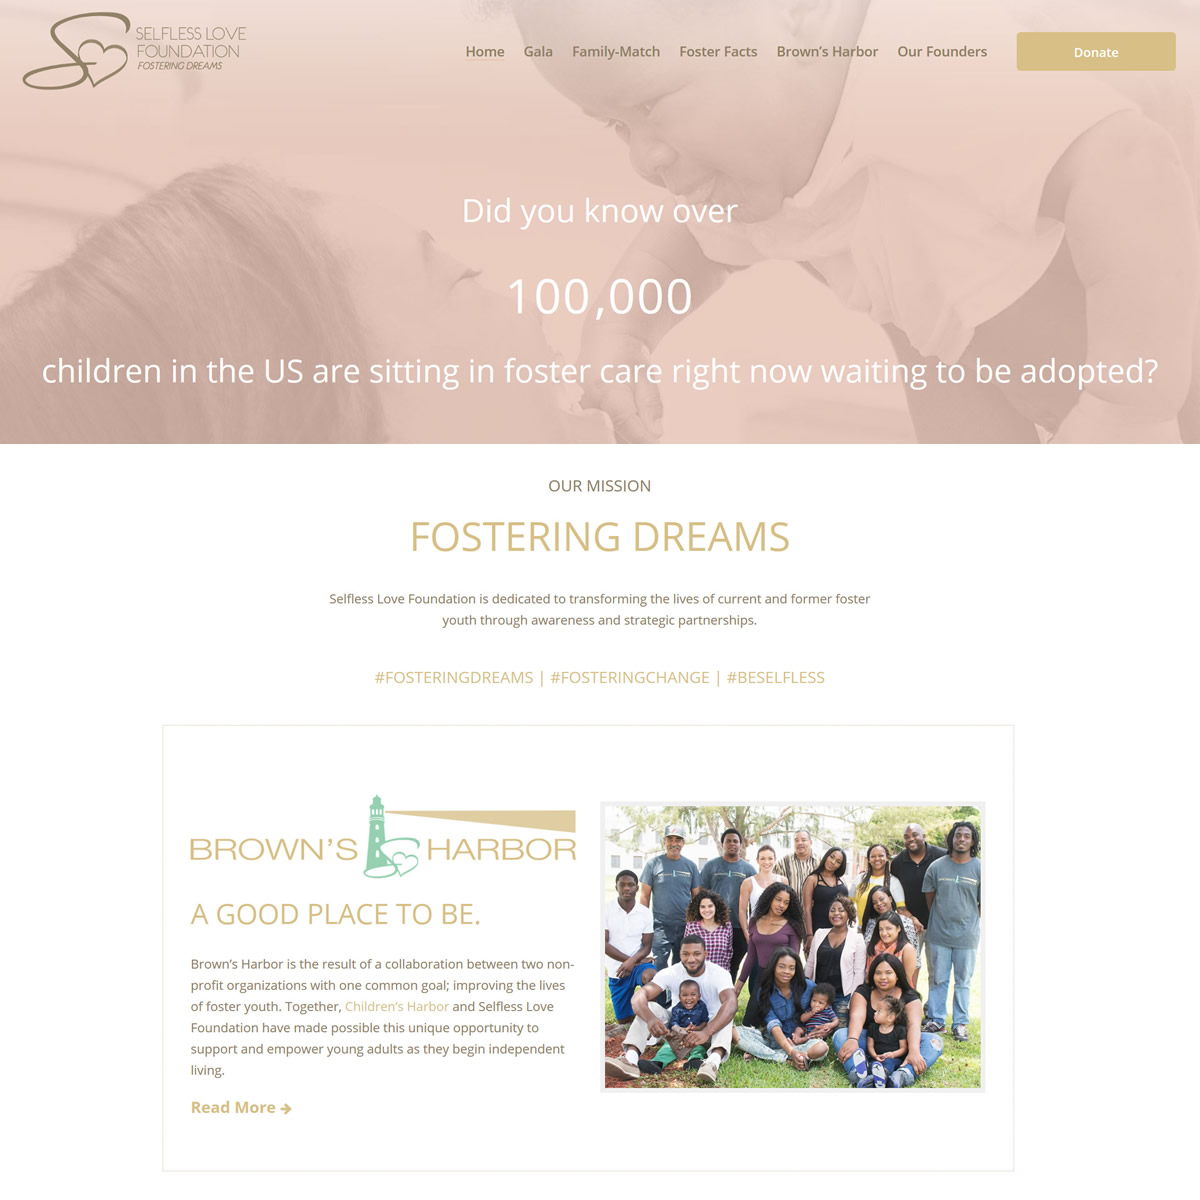 Family Match FL, Selfless Love Foundation, GoHooper Web Design Miami